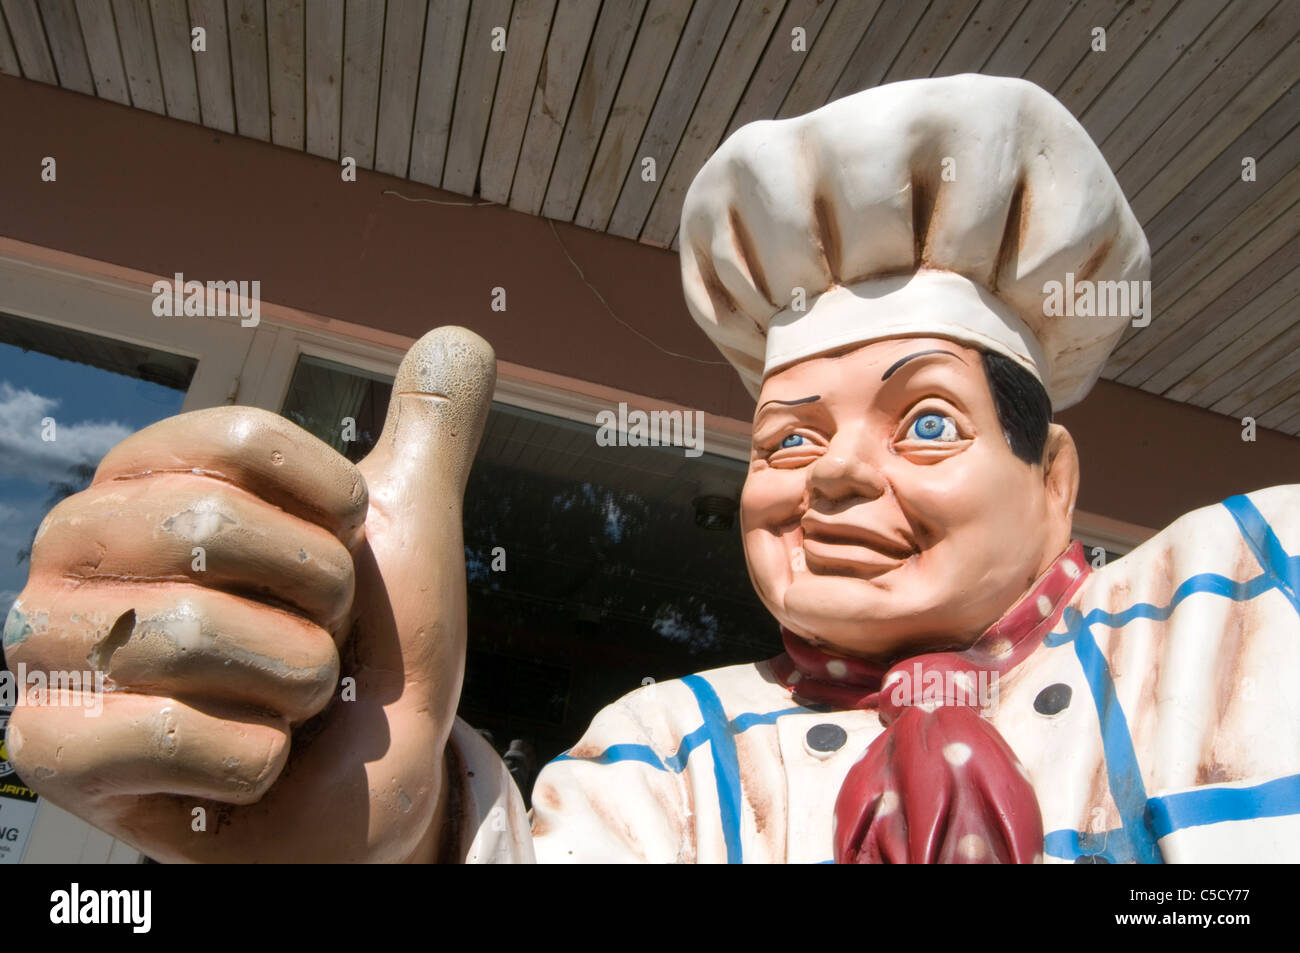 food critic critics happy chef chefs thumbs up good food meal meals great food restaurant restaurants review star - Stock Image